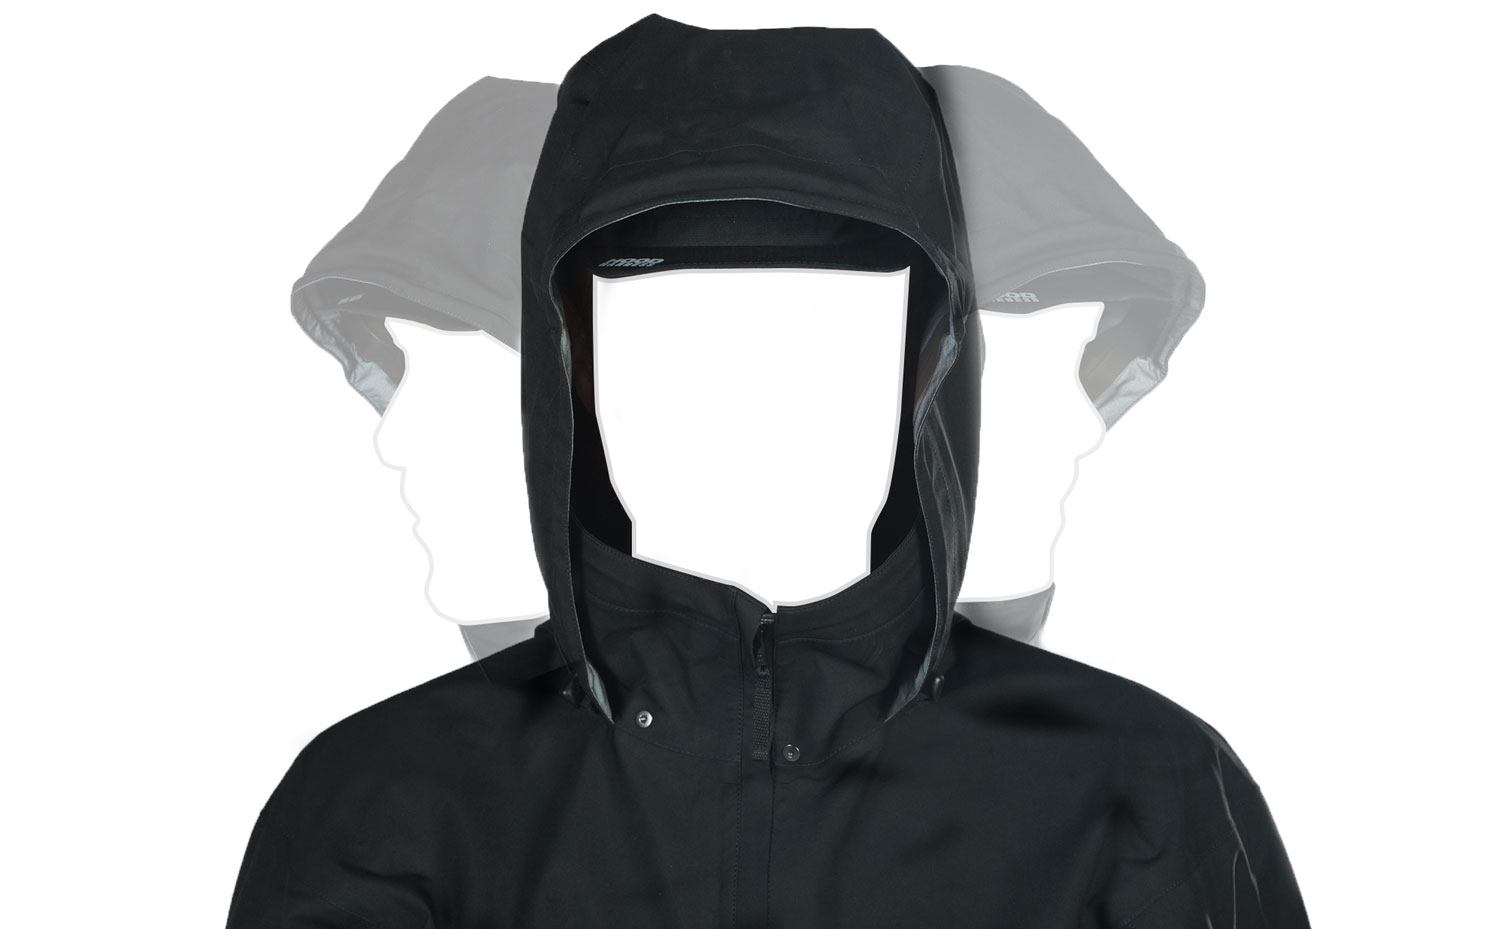 UFPRO MONSOON GEN.2 JACKET - outpost-shop.com